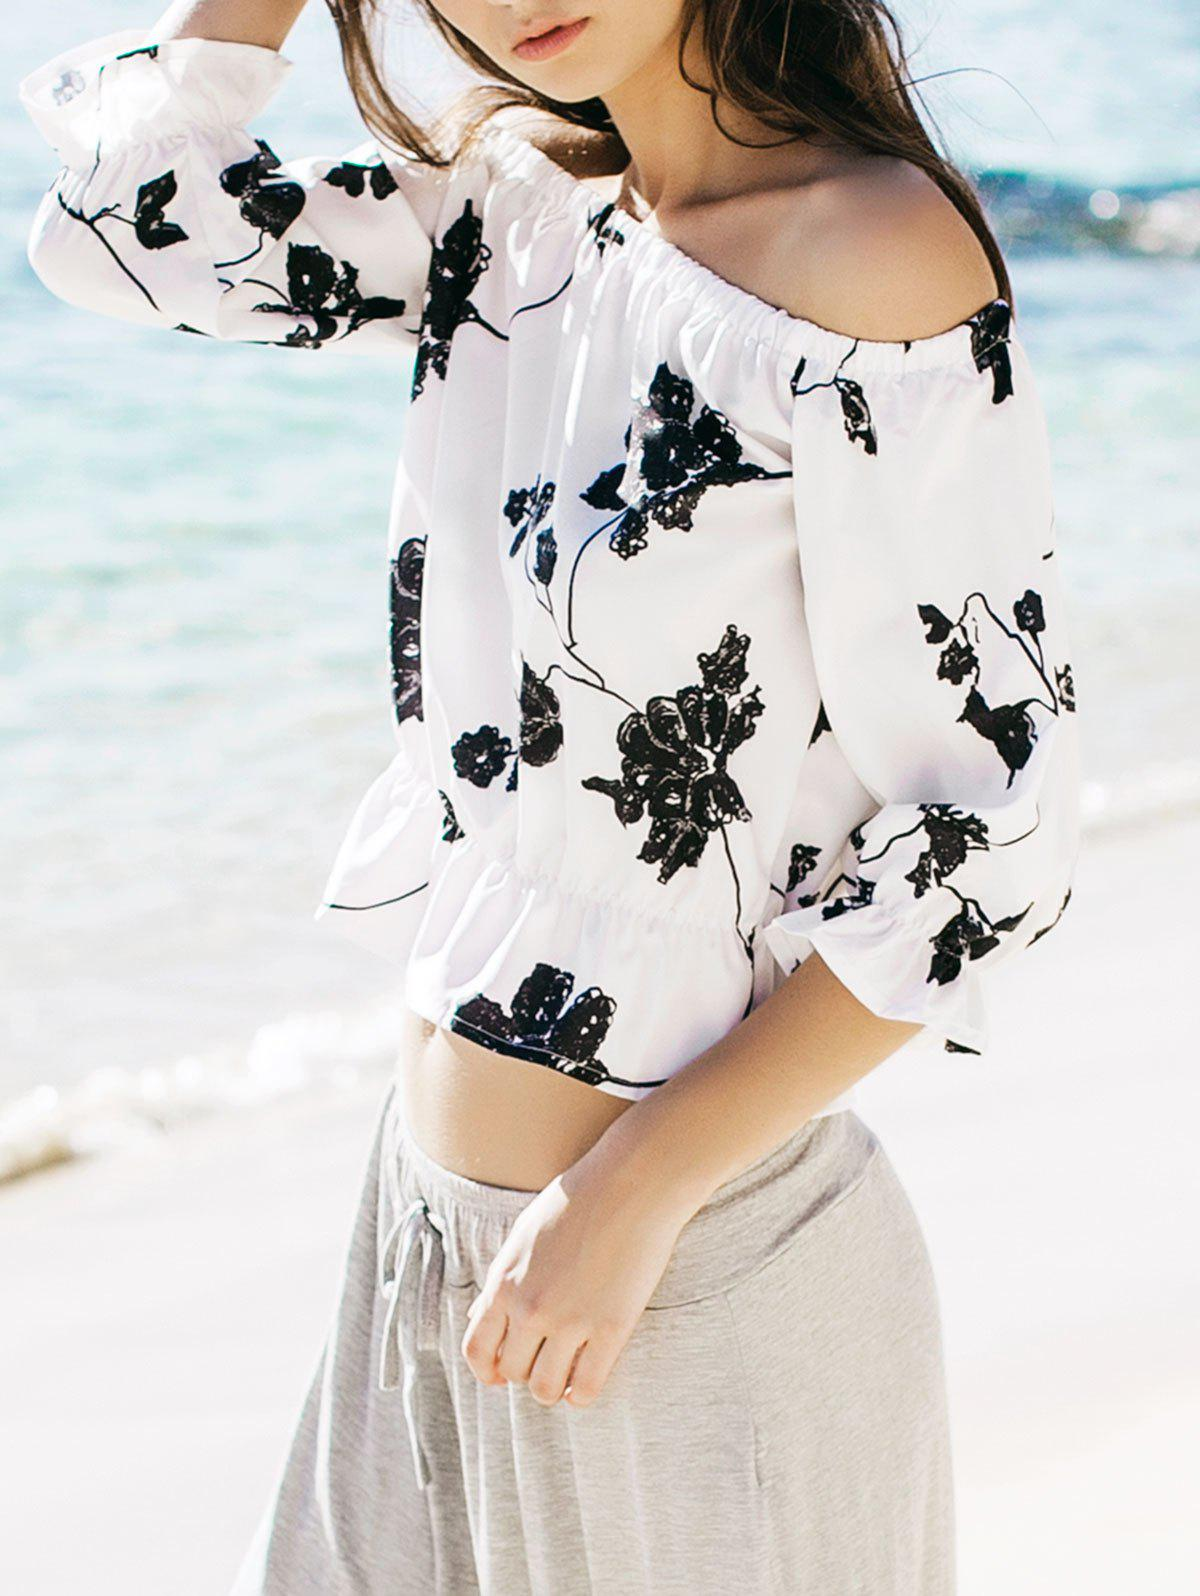 Refreshing Black Floral Printed Off-The-Shoulder Short Blouse For Women - WHITE L